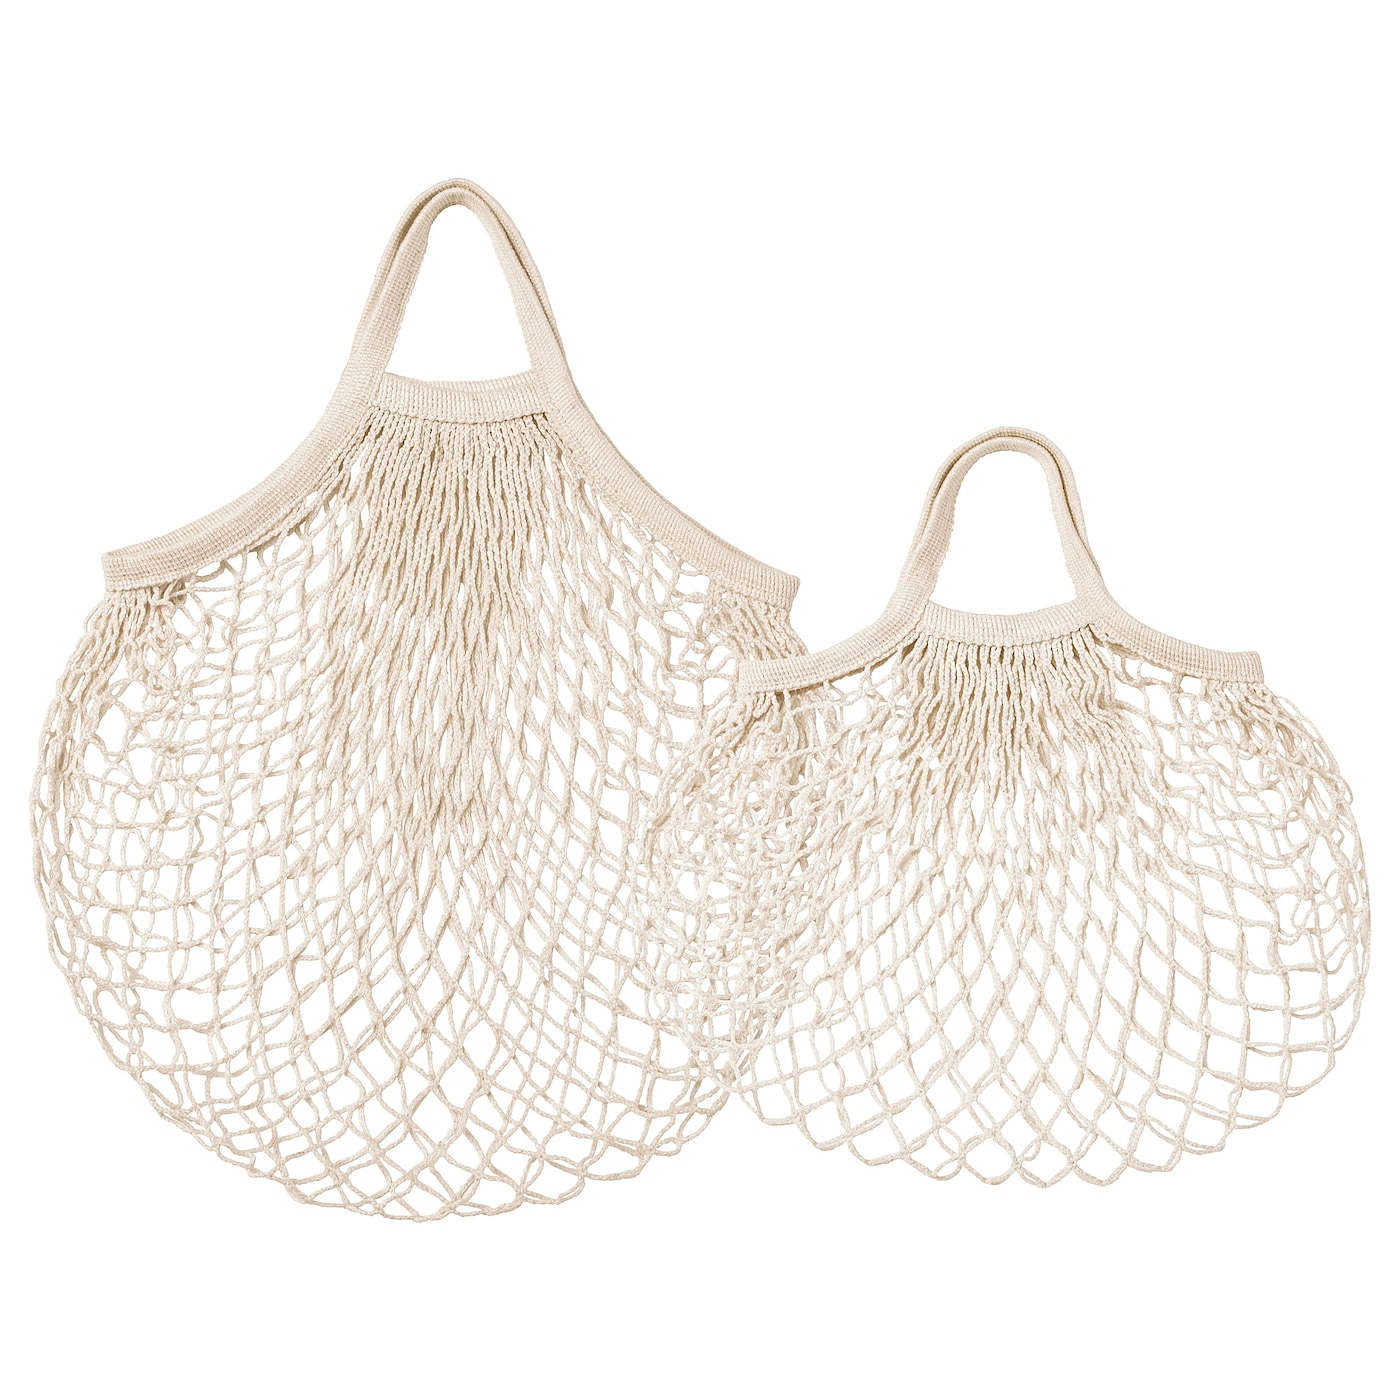 IKEA KUNGSFORS net bag, set of 2 May also be used in high humidity areas.